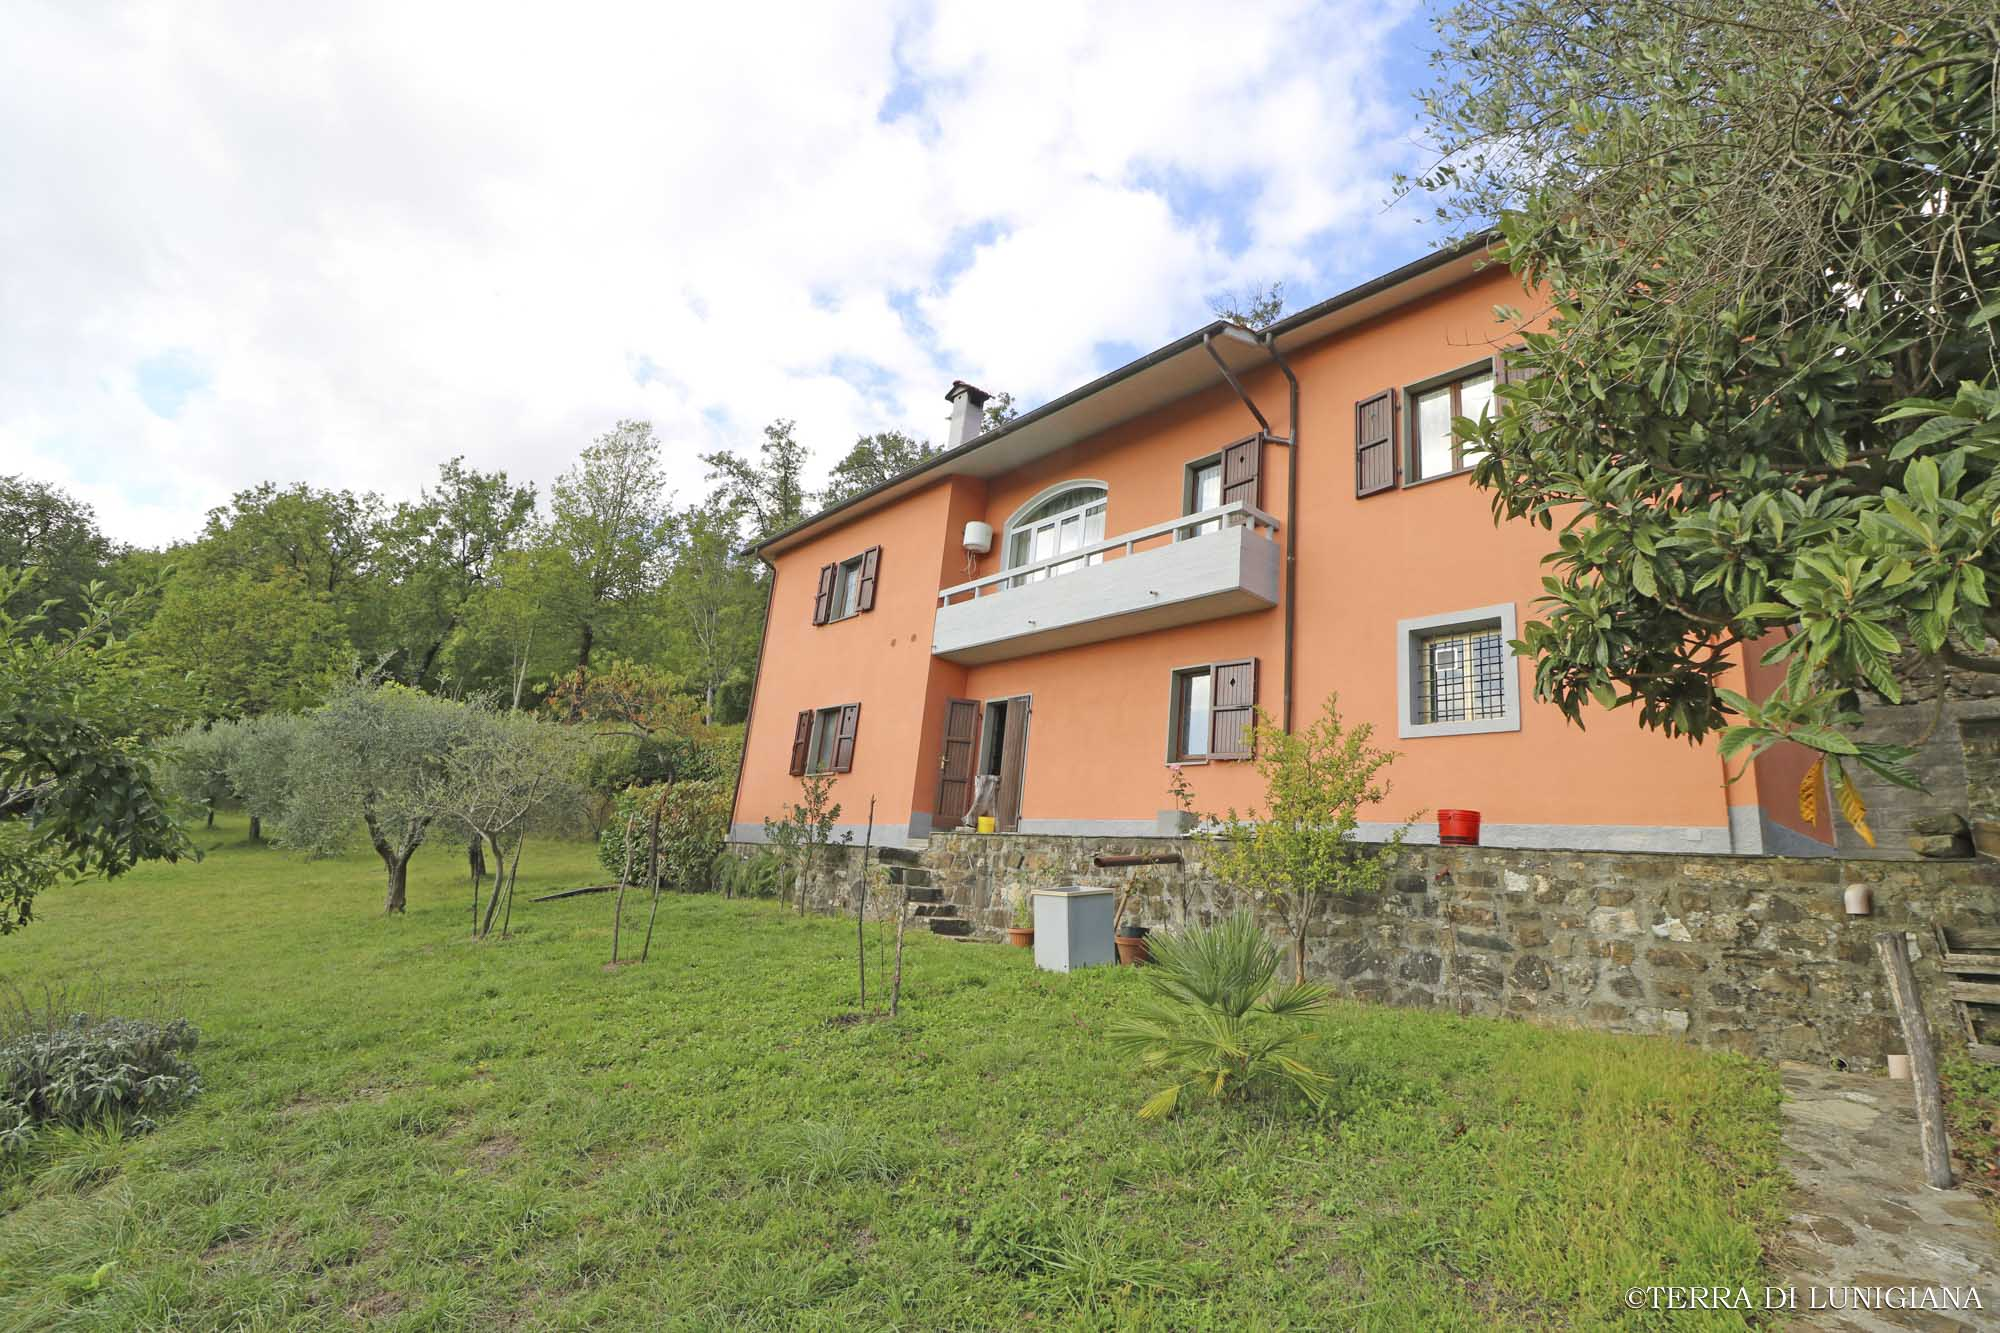 CA' DI RINO – Detached Country House with Land